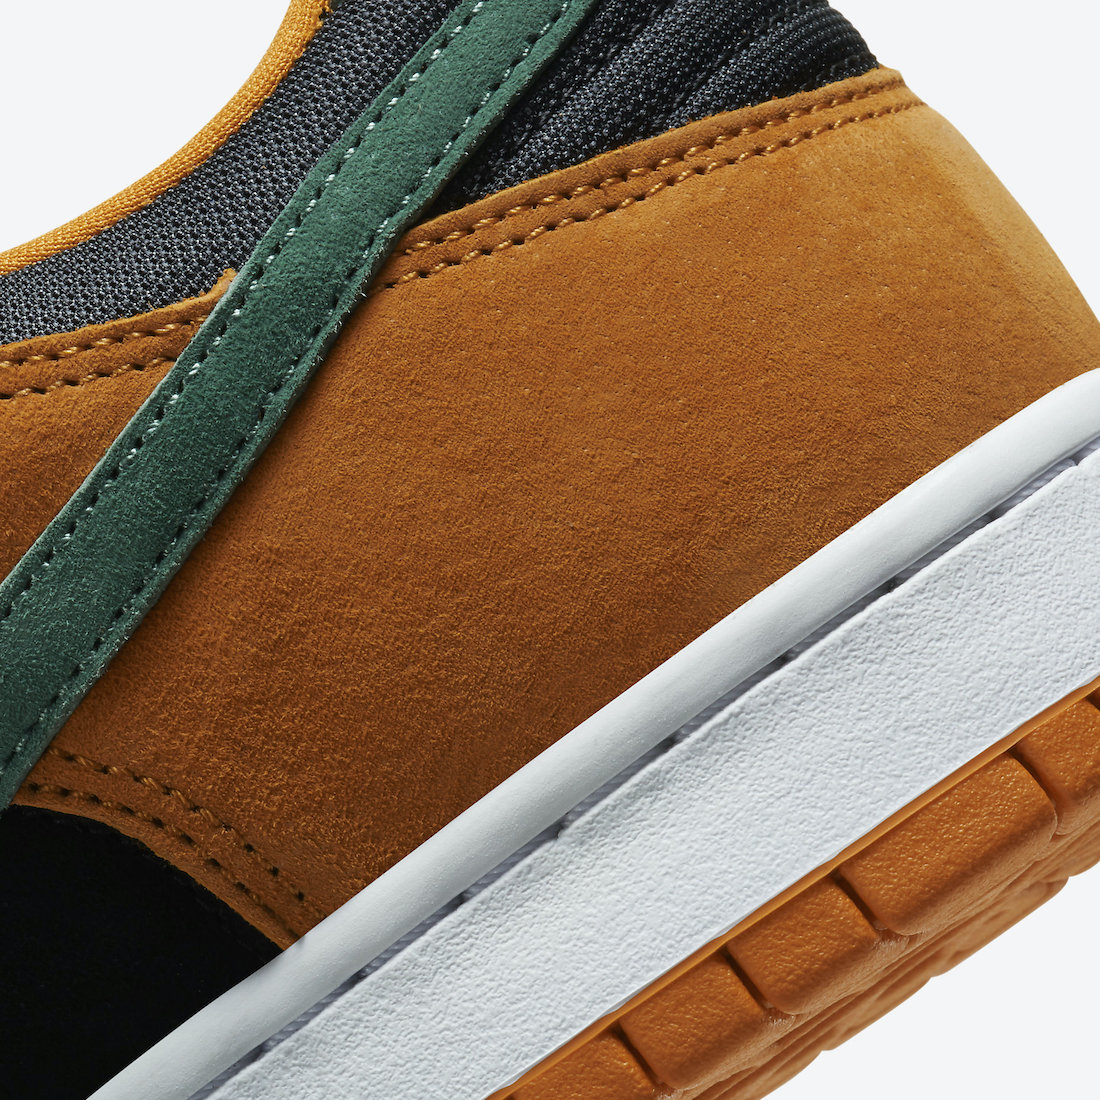 Nike-Dunk-Low-Ceramic-DA1469-001-Release-Date-Price-7